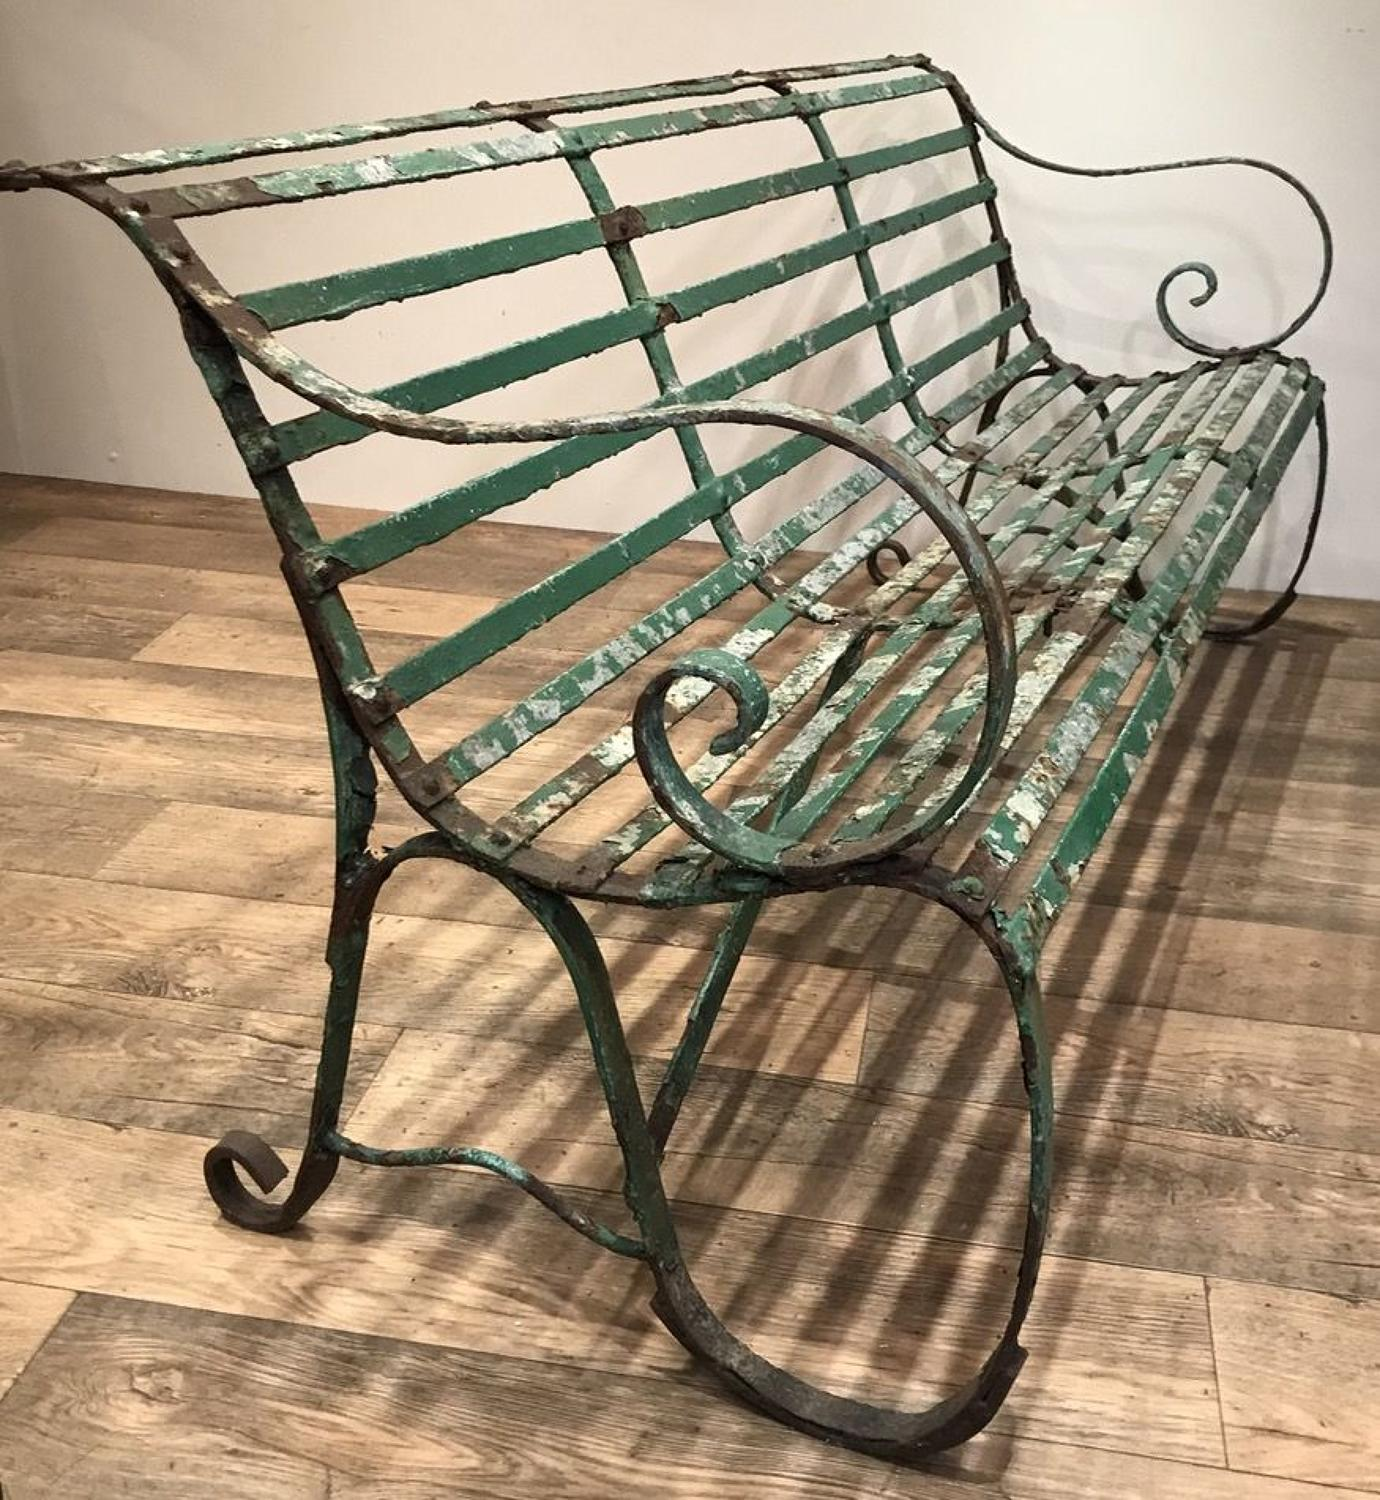 VICTORIAN WROUGHT IRON GARDEN BENCH